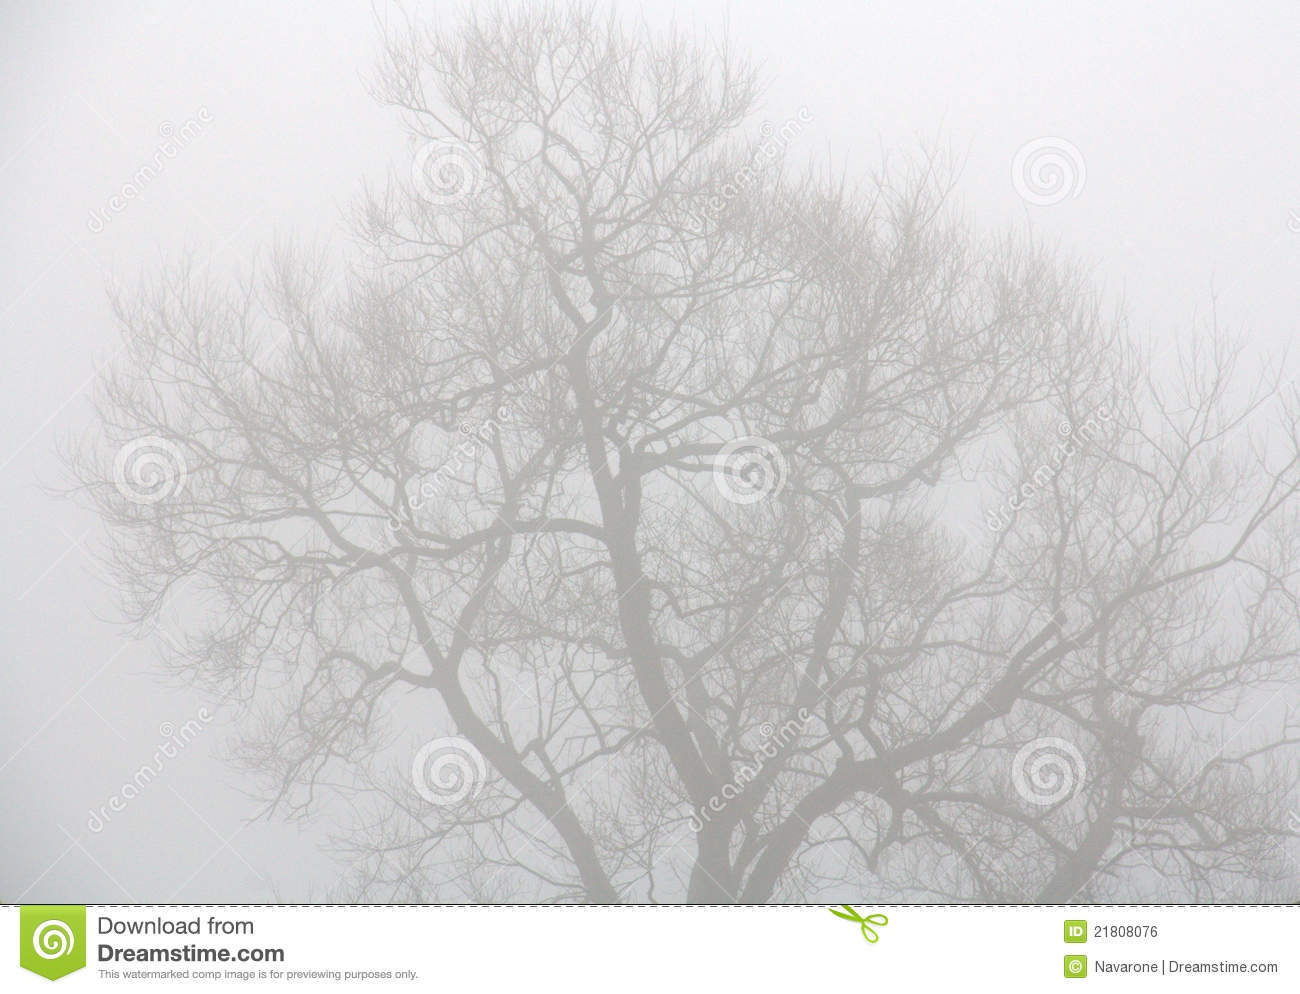 Trees Through Heavy Mist Royalty Free Stock Image.